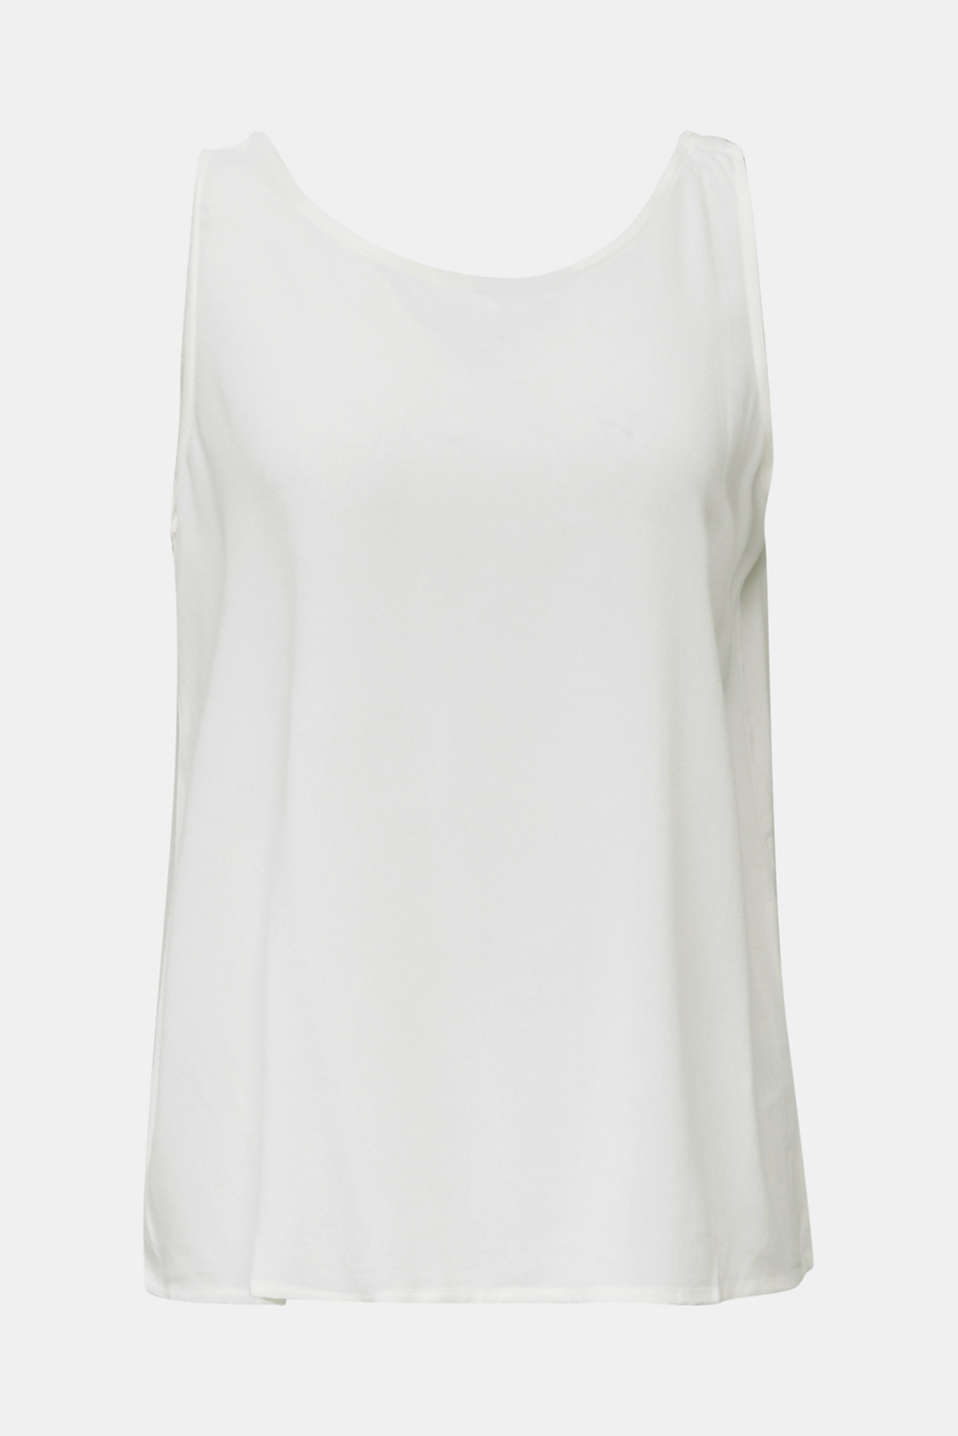 Flowing crepe blouse top, OFF WHITE, detail image number 5